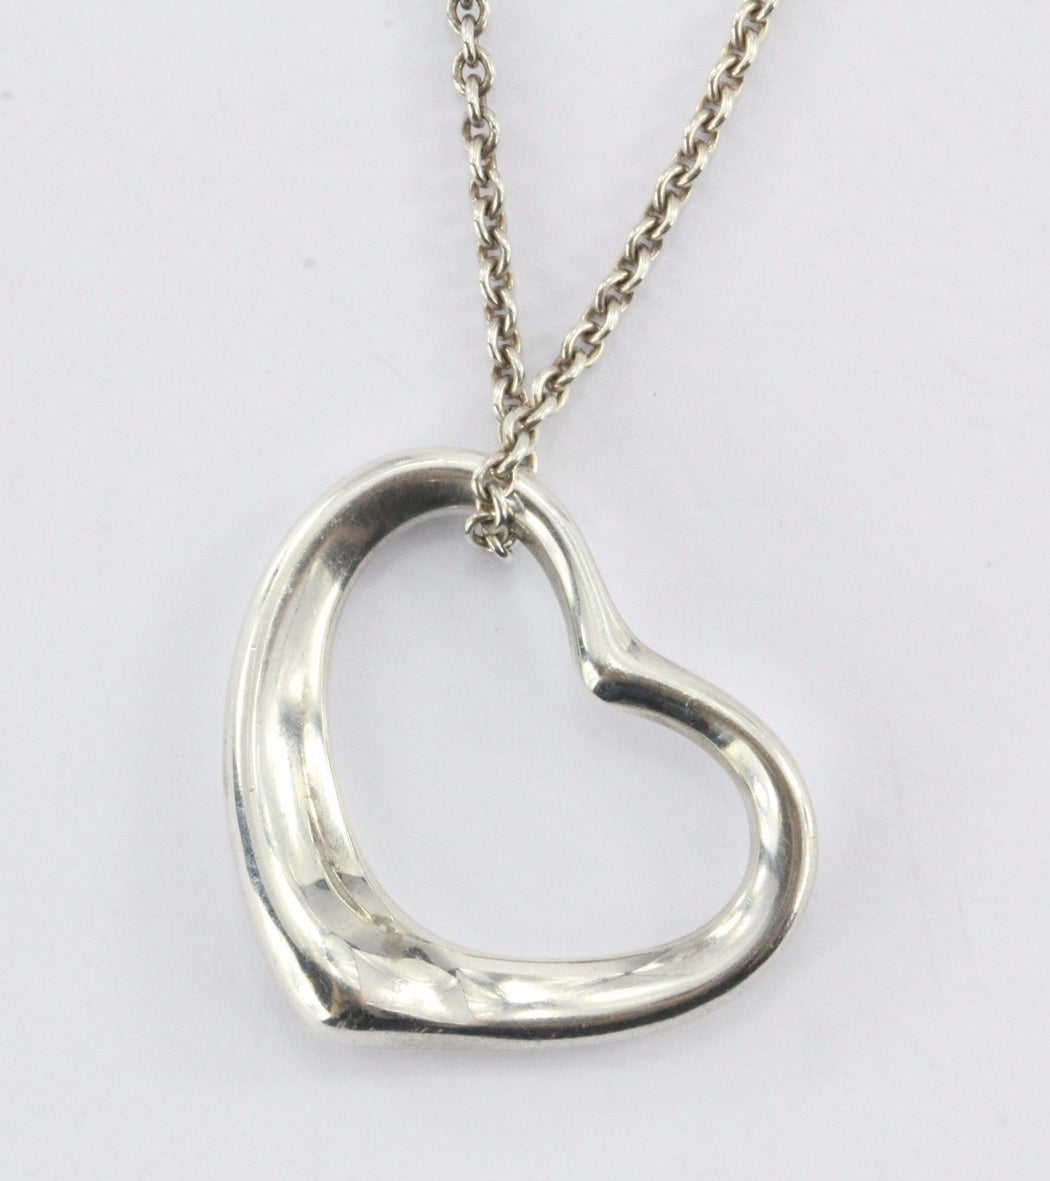 410e3aff24b Vintage Tiffany & Co Sterling Silver Elsa Peretti Open Heart Pendant  Necklace - Queen ...